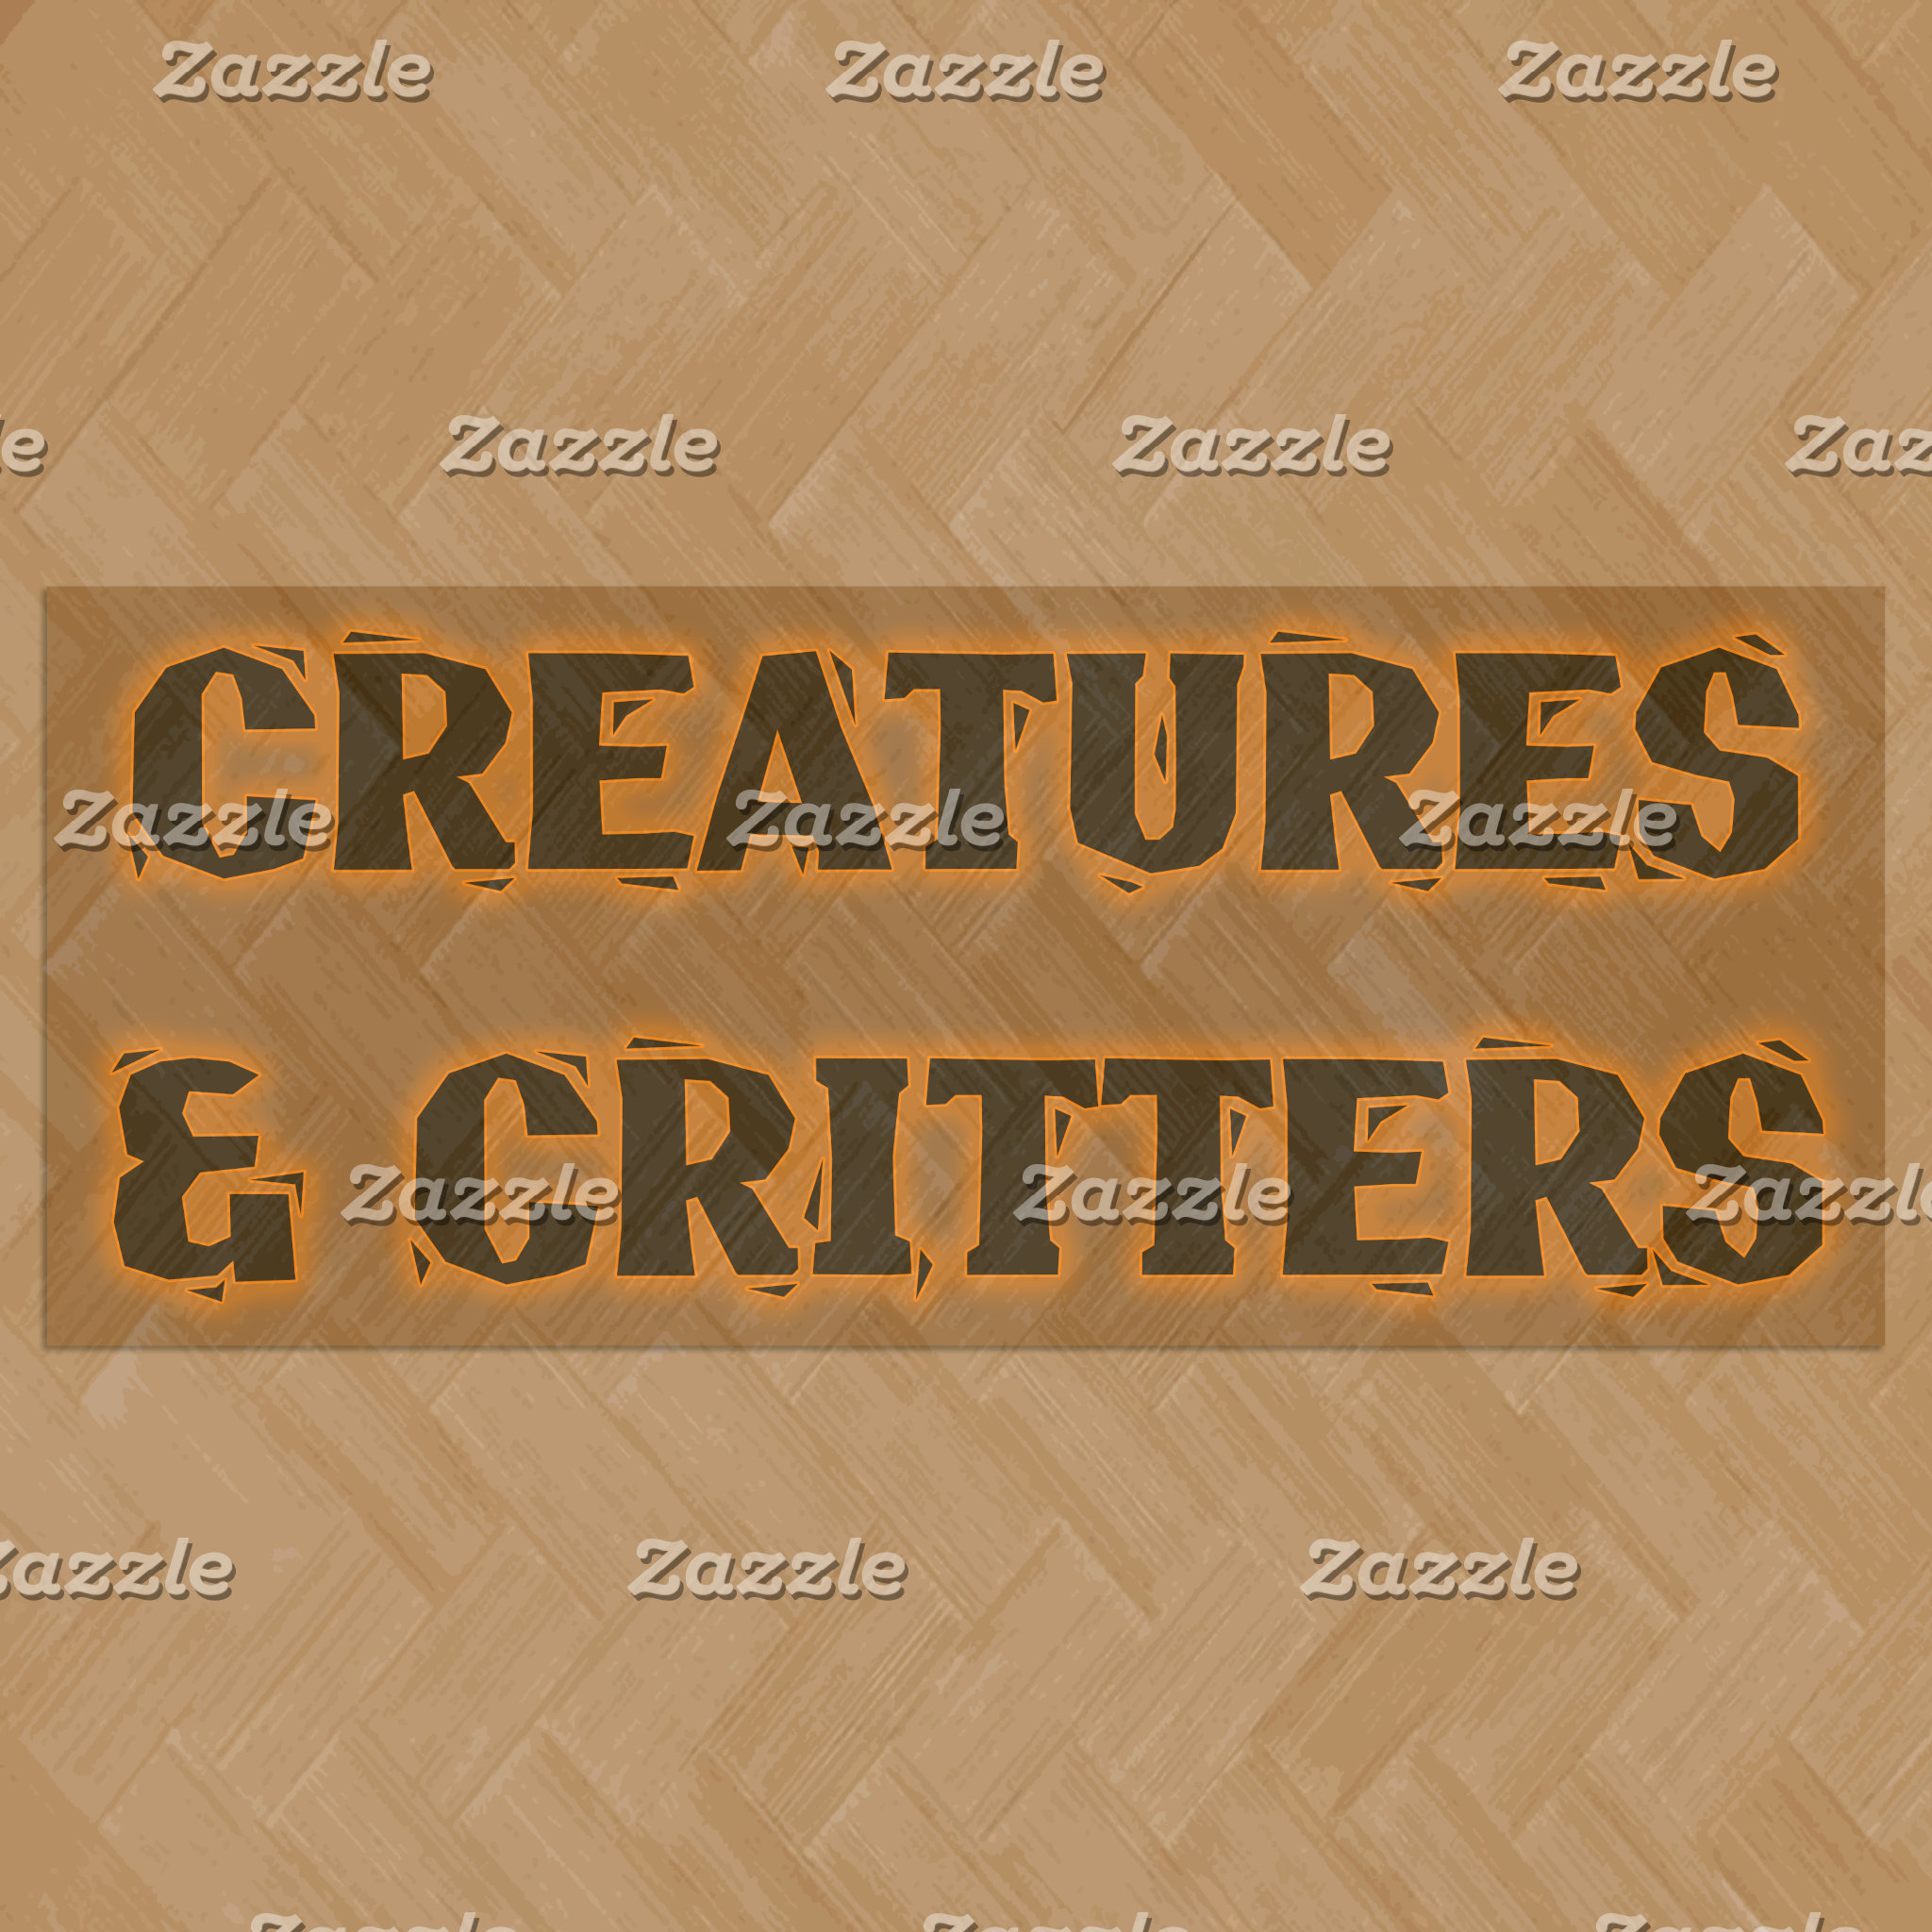 Creatures and Critters